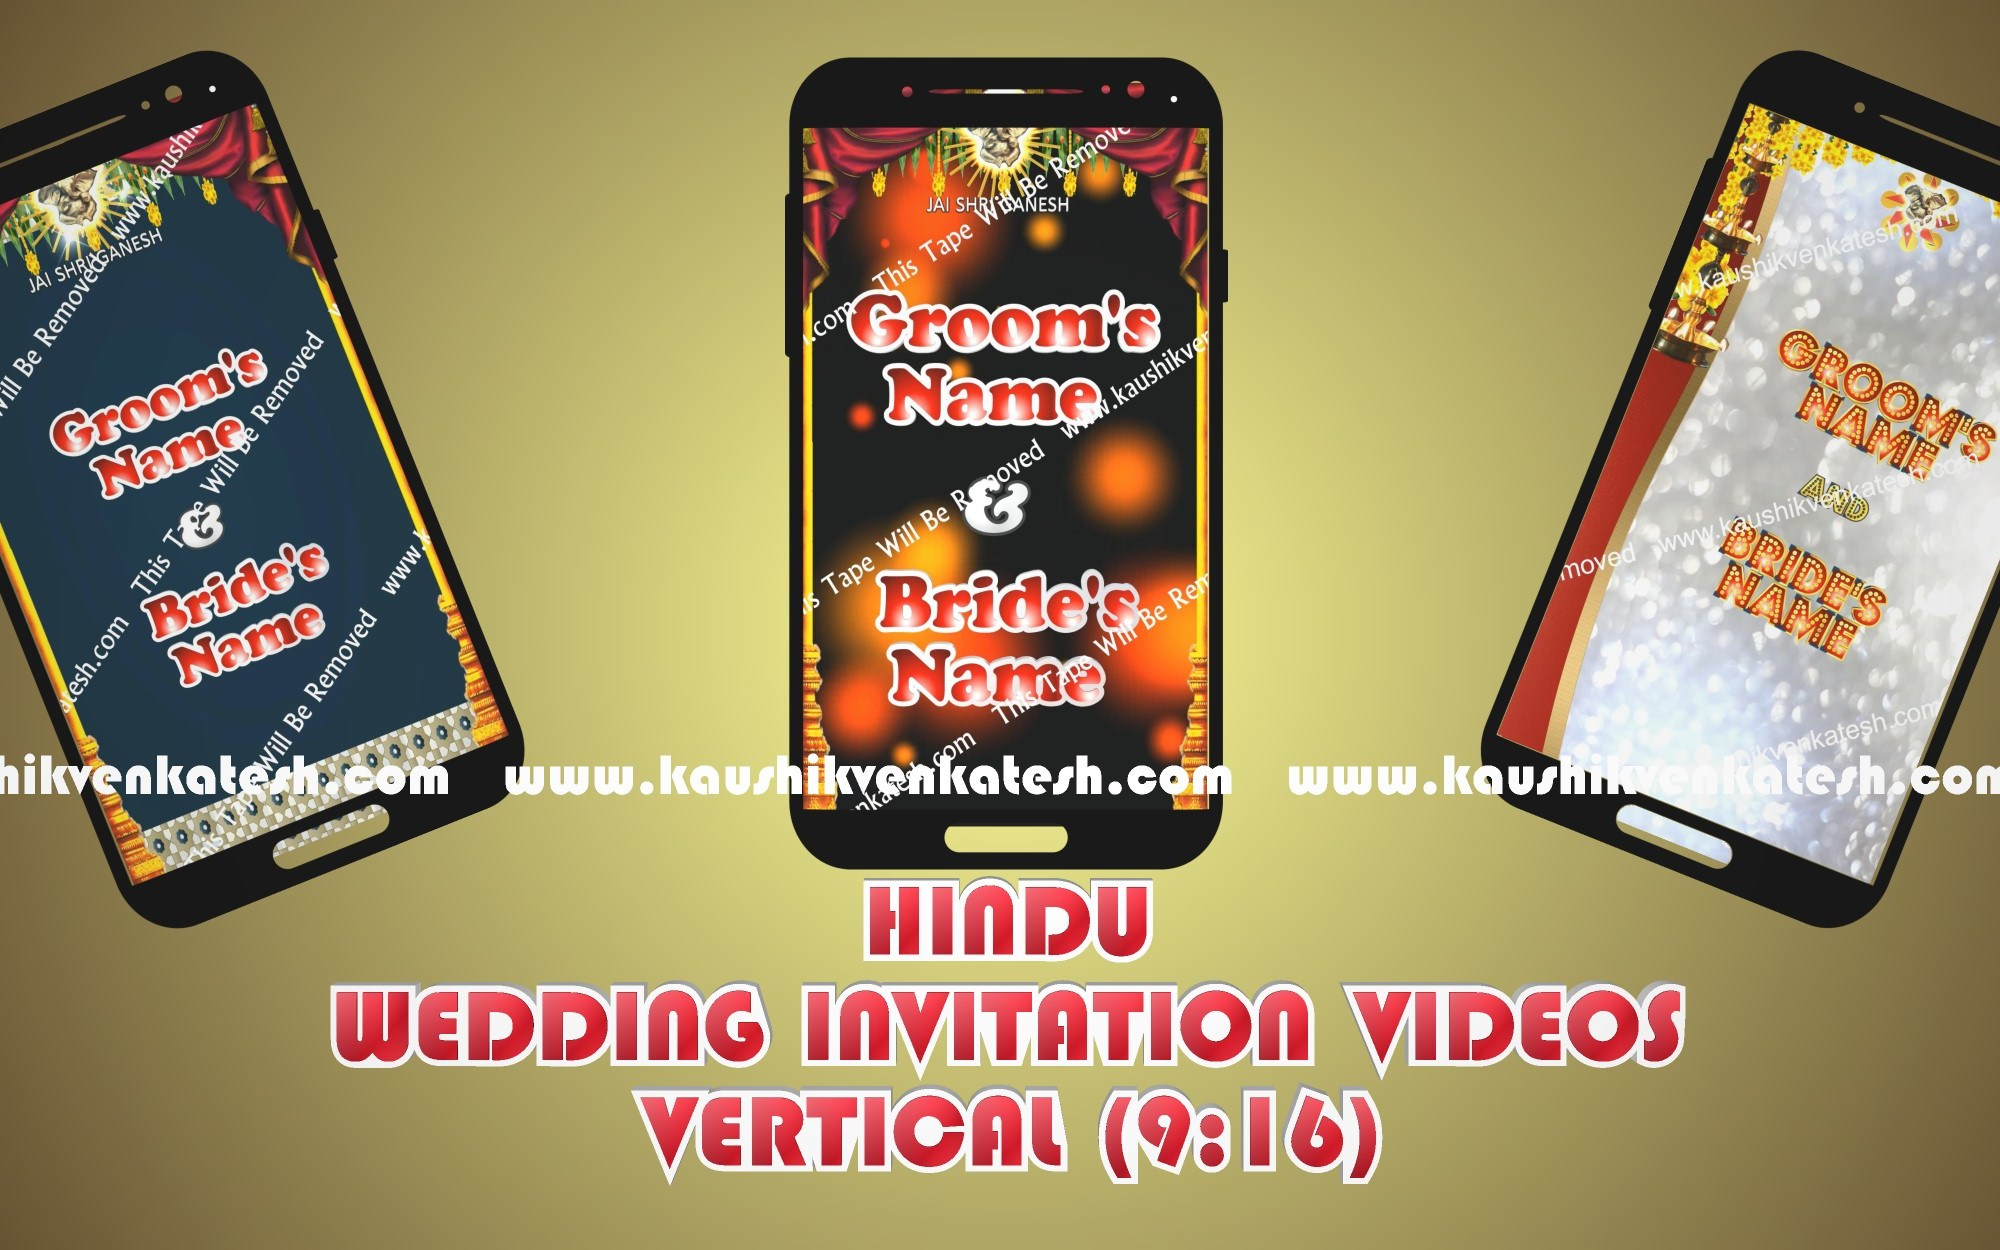 Vertical videos of Hindu Wedding Invitation designed specifically for Mobile.